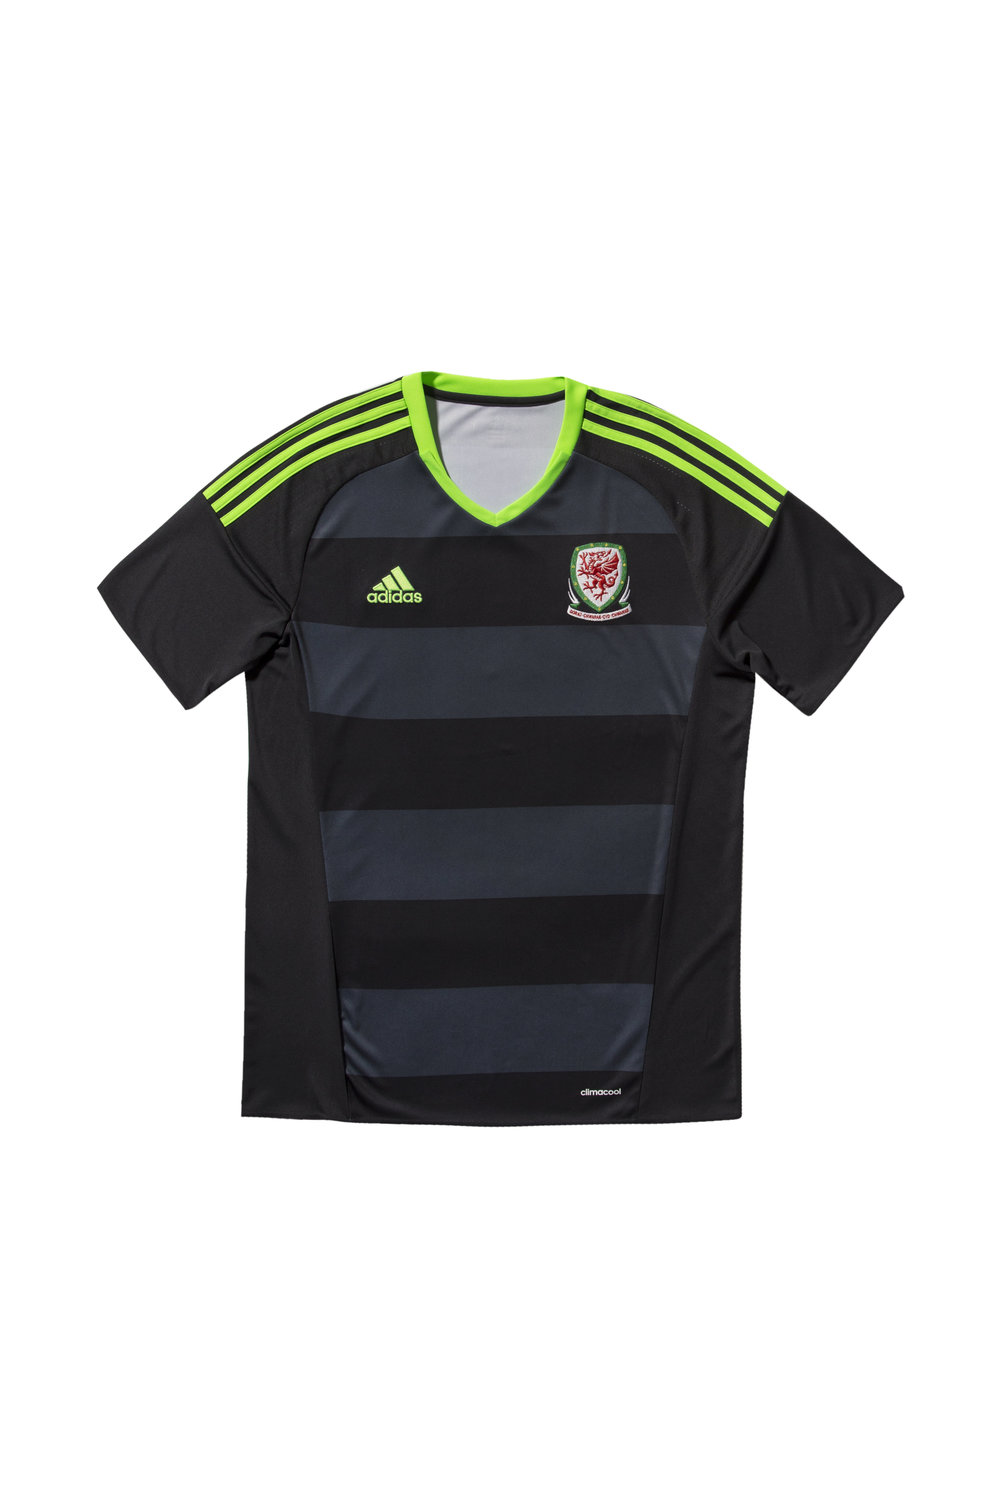 www.jdsports.co.uk adidas FA Wales Away 2016 Shirt, Exclusively Stocked at JD, £55.jpg